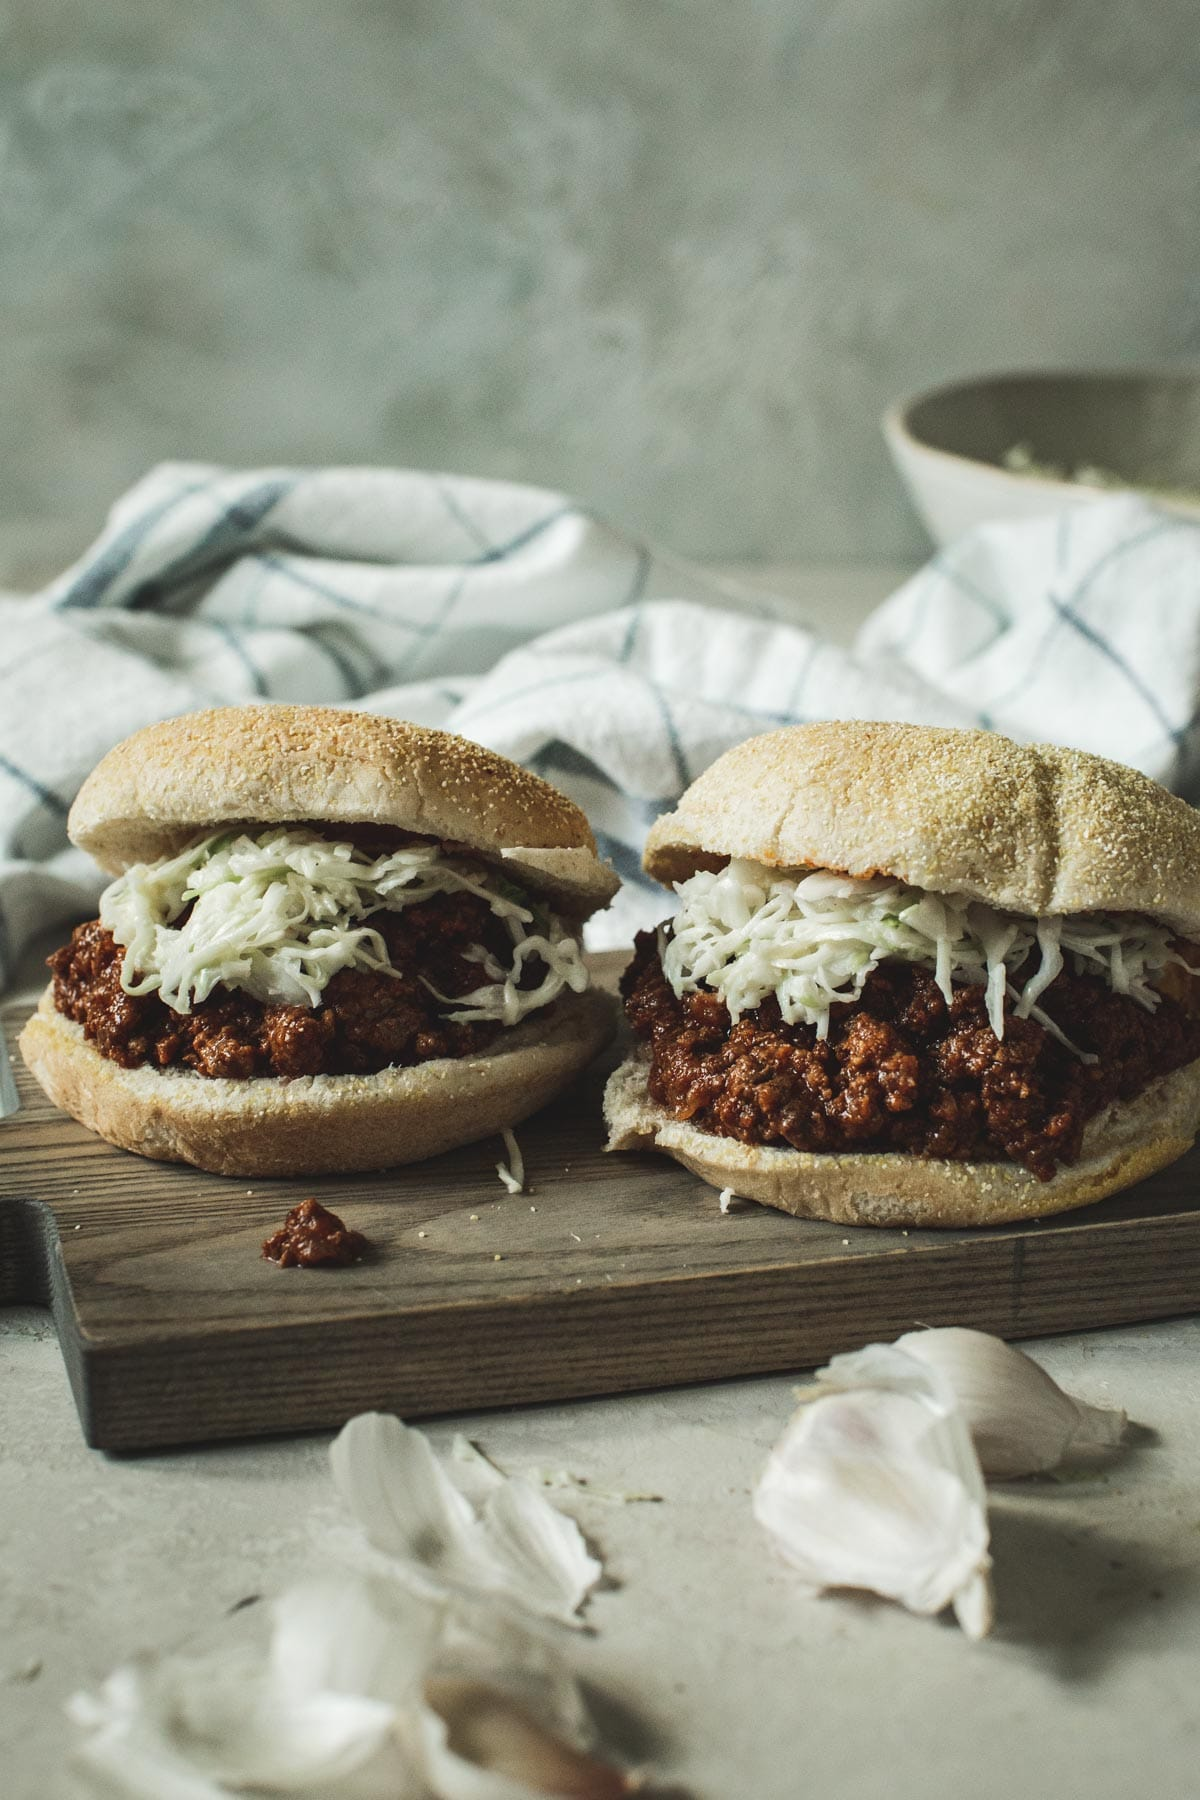 Sloppy Joes topped with coleslaw sitting on a wooden board.